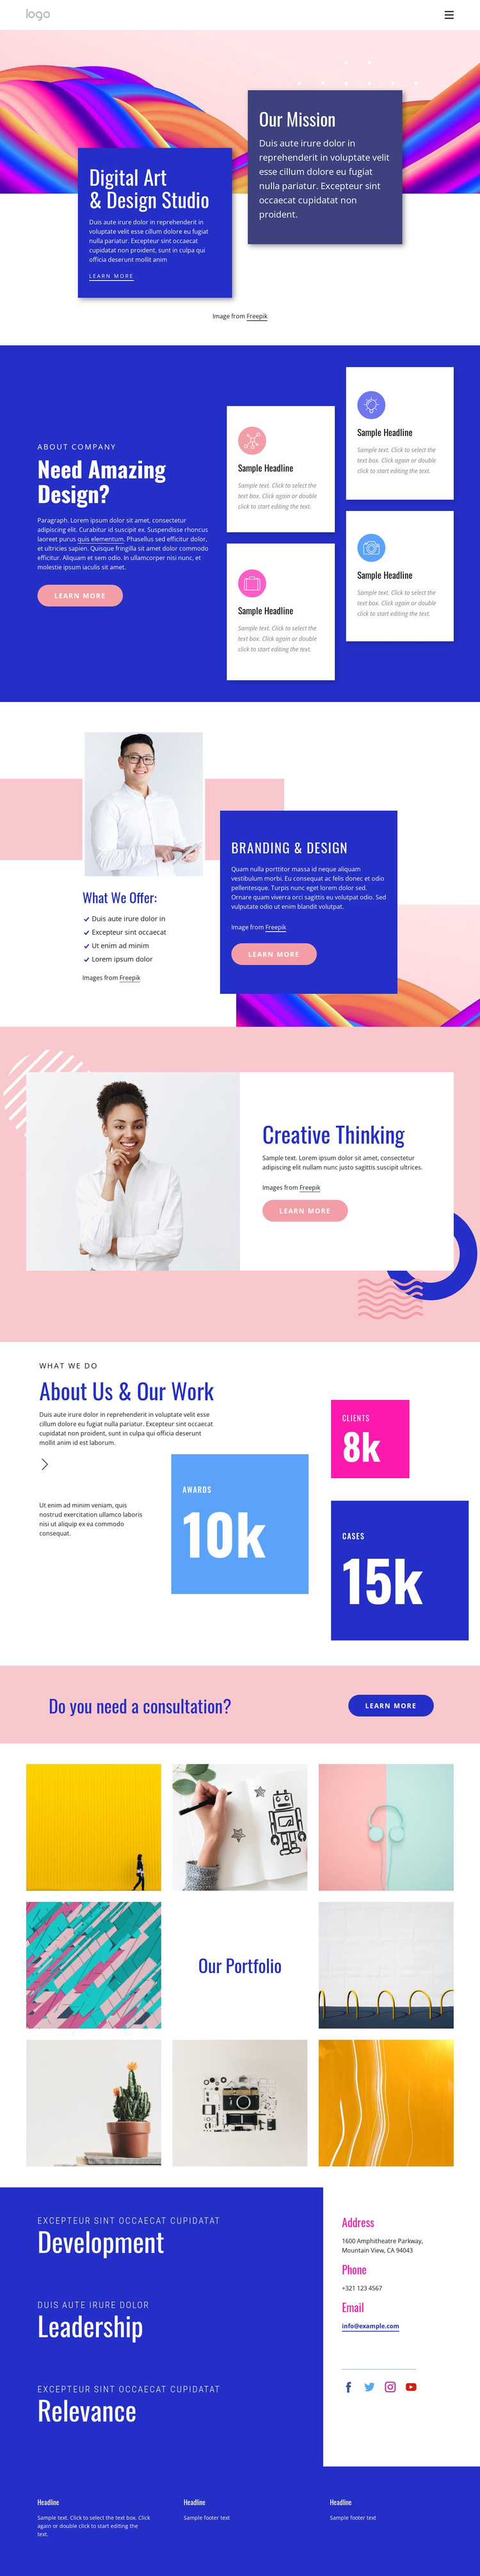 Create content that connects Template